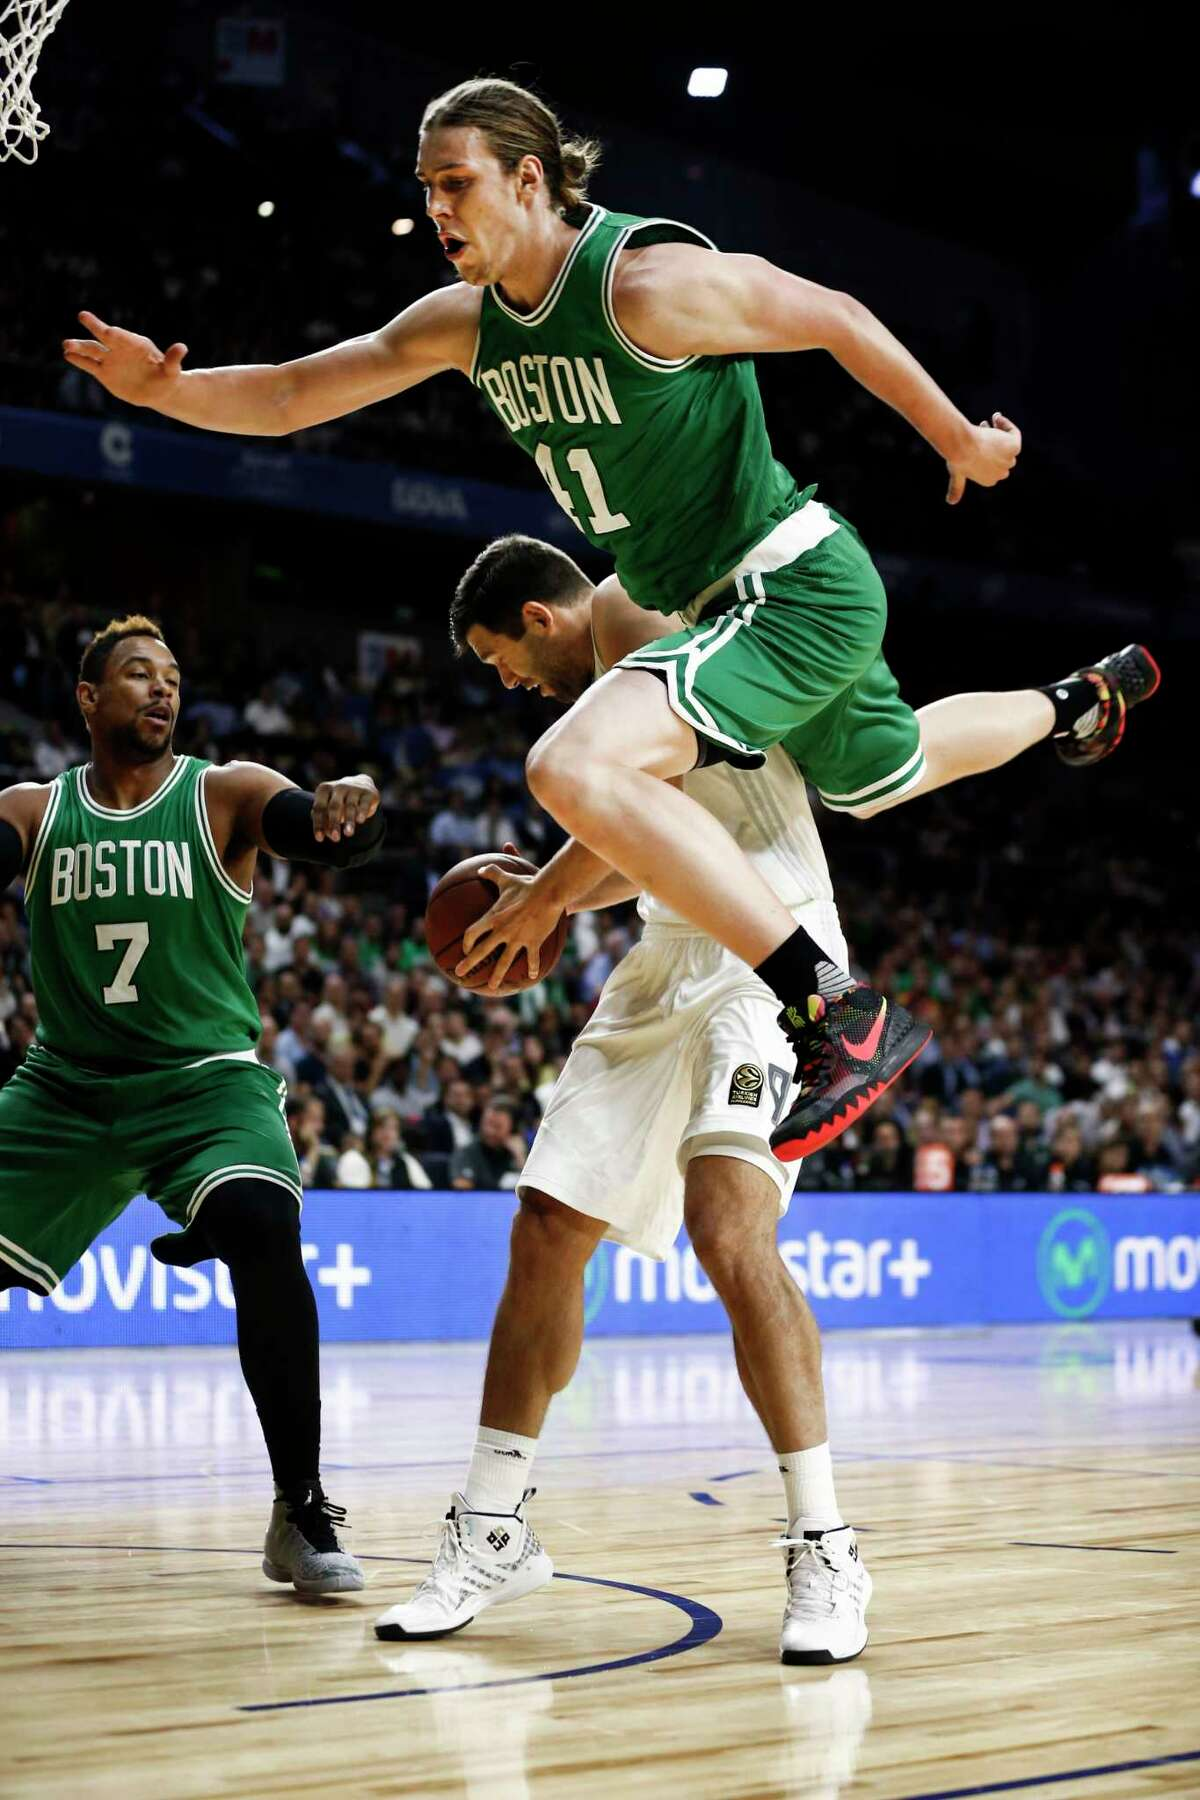 The Boston Celtics' Kelly Olynyk, top, falls over Real Madrid's Felipe Reyesd during Thursday's game against Real Madrid at the Barclaycard Centre sport arena in Madrid, Spain.